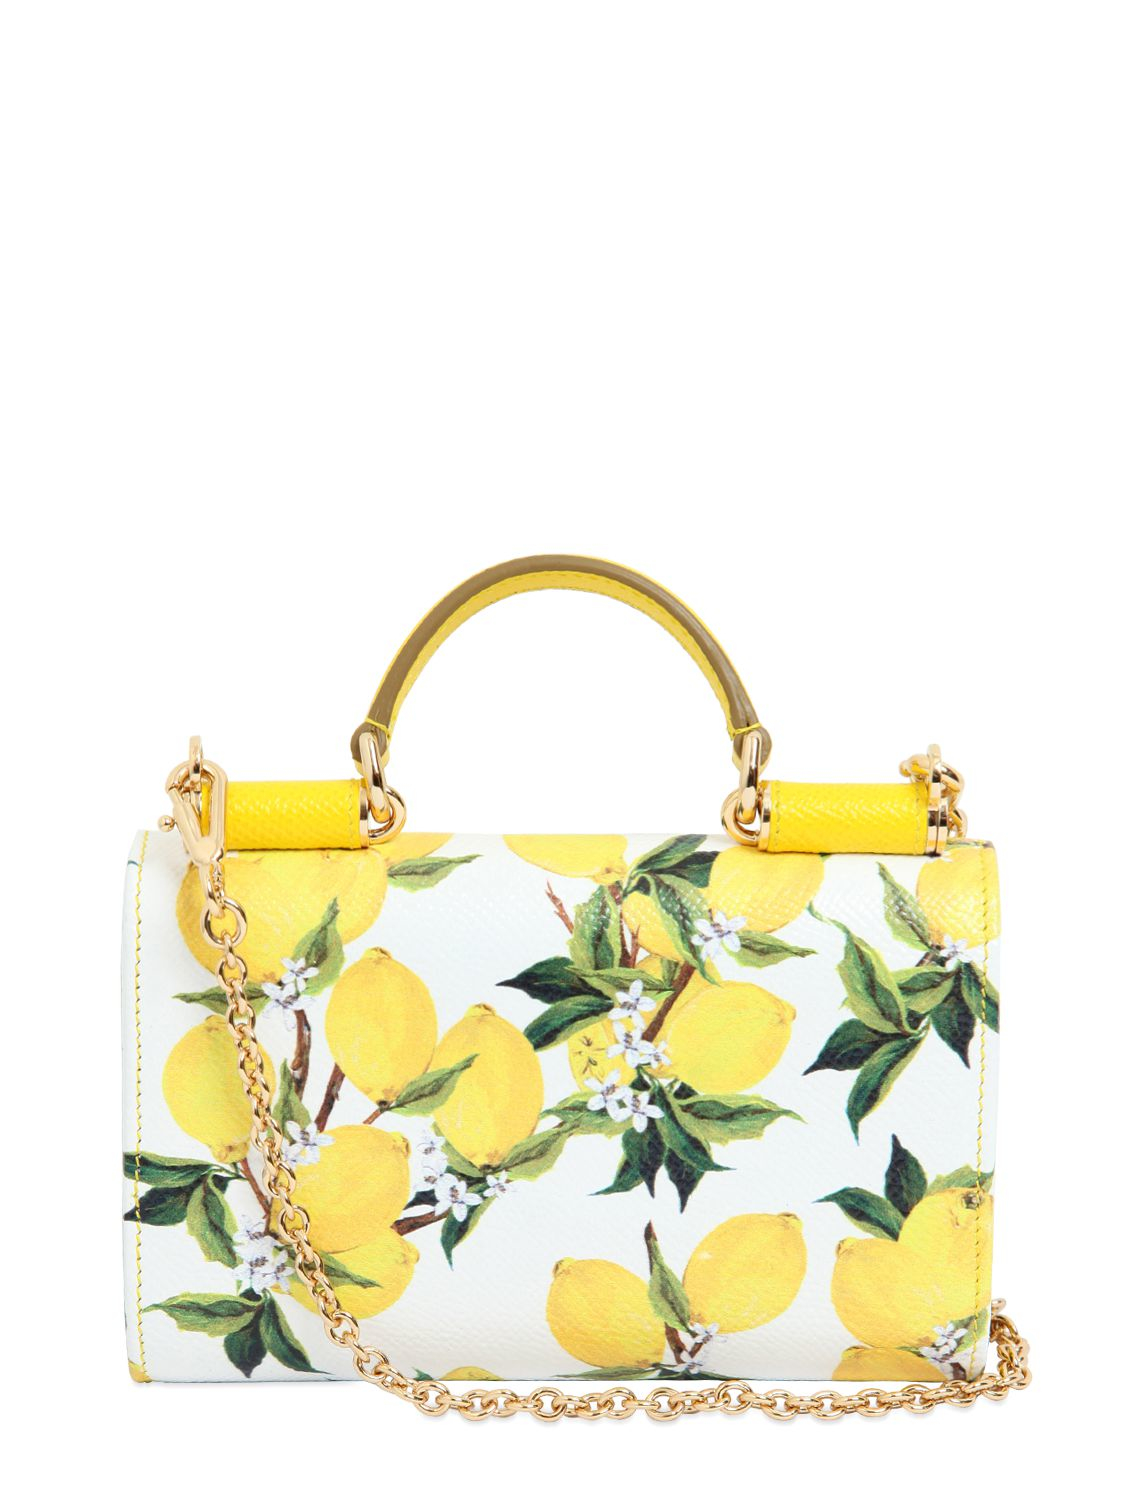 Lyst - Dolce   Gabbana Lemons Printed Leather Phone Clutch in Yellow 5d7bc3a415eaa